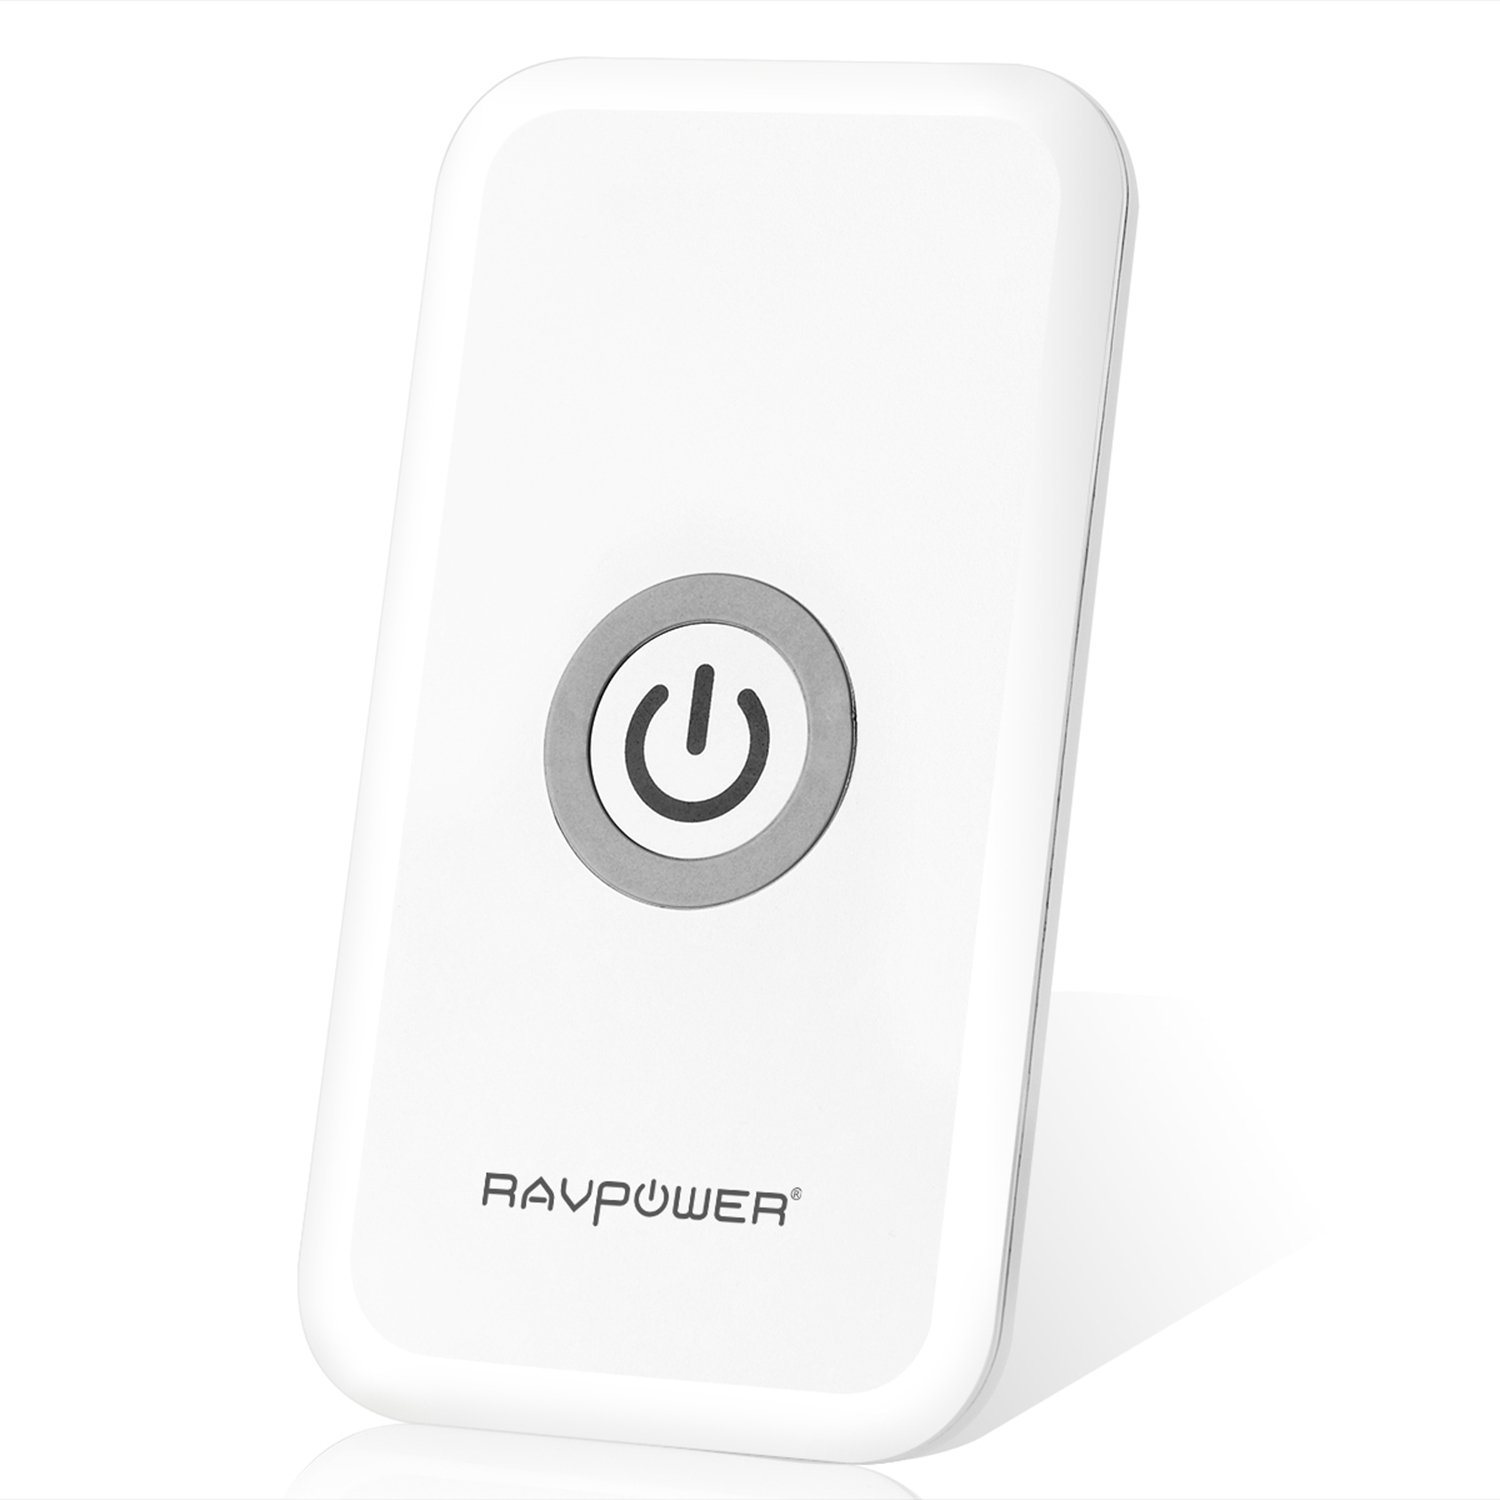 RAVPower wireless charger power bank